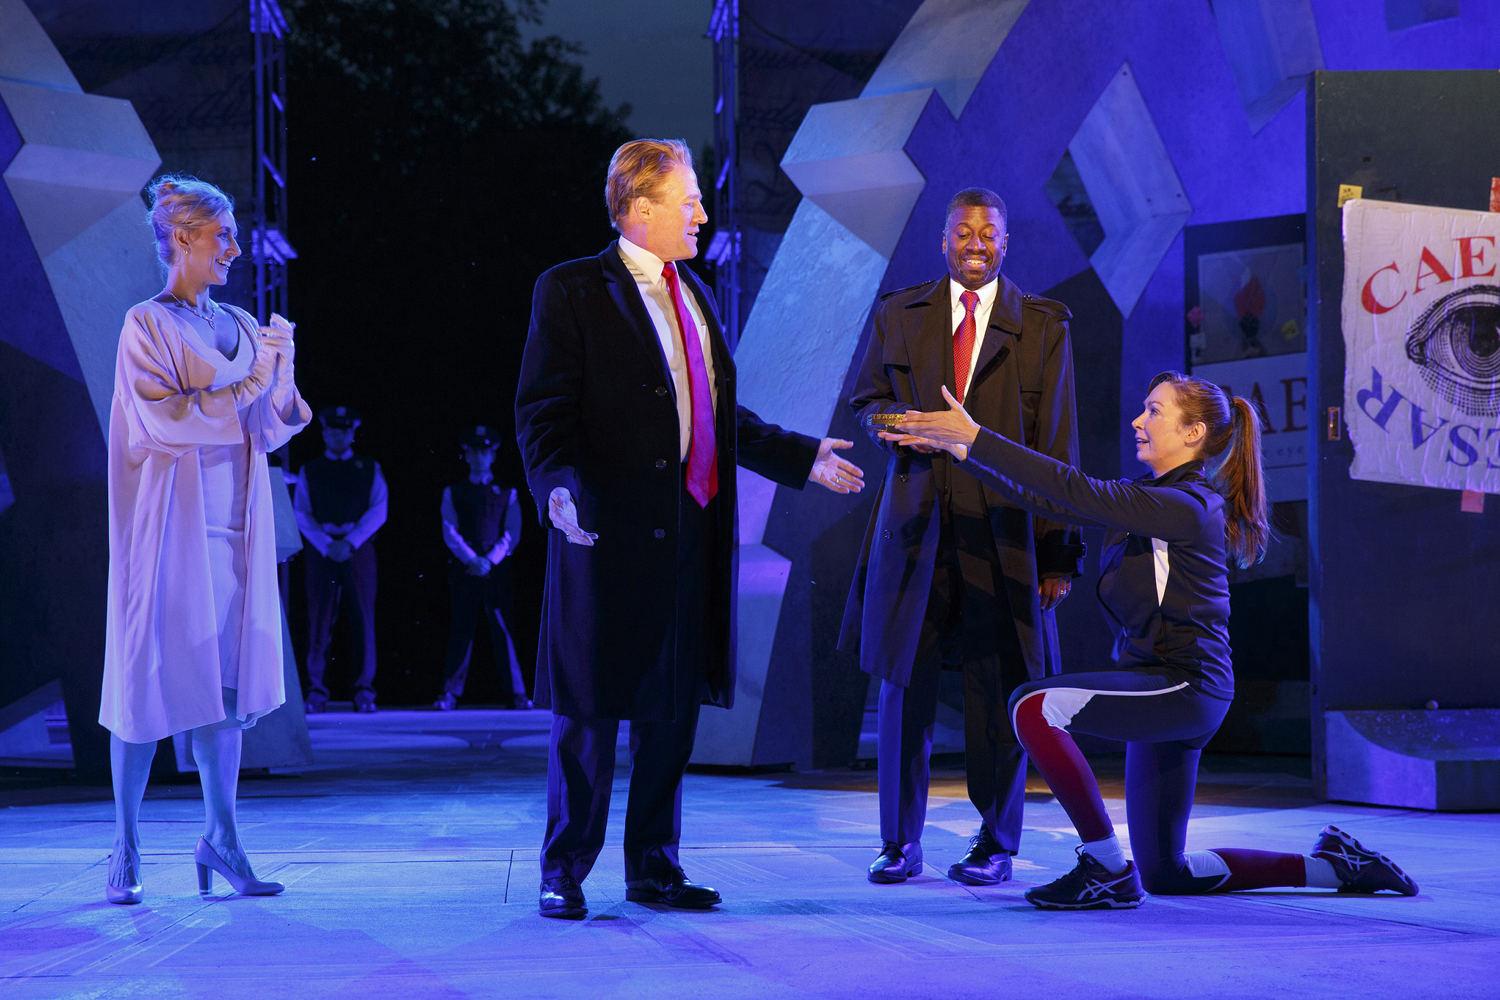 Tina Benko, left, portrays Melania Trump in the role of Caesar's wife, Calpurnia, and Gregg Henry, center left, portrays President Donald Trump in the role of Julius Caesar during a dress rehearsal of The Public Theater's Free Shakespeare in the Park production of Julius Caesar in New York. (Joan Marcus/The Public Theater via AP)